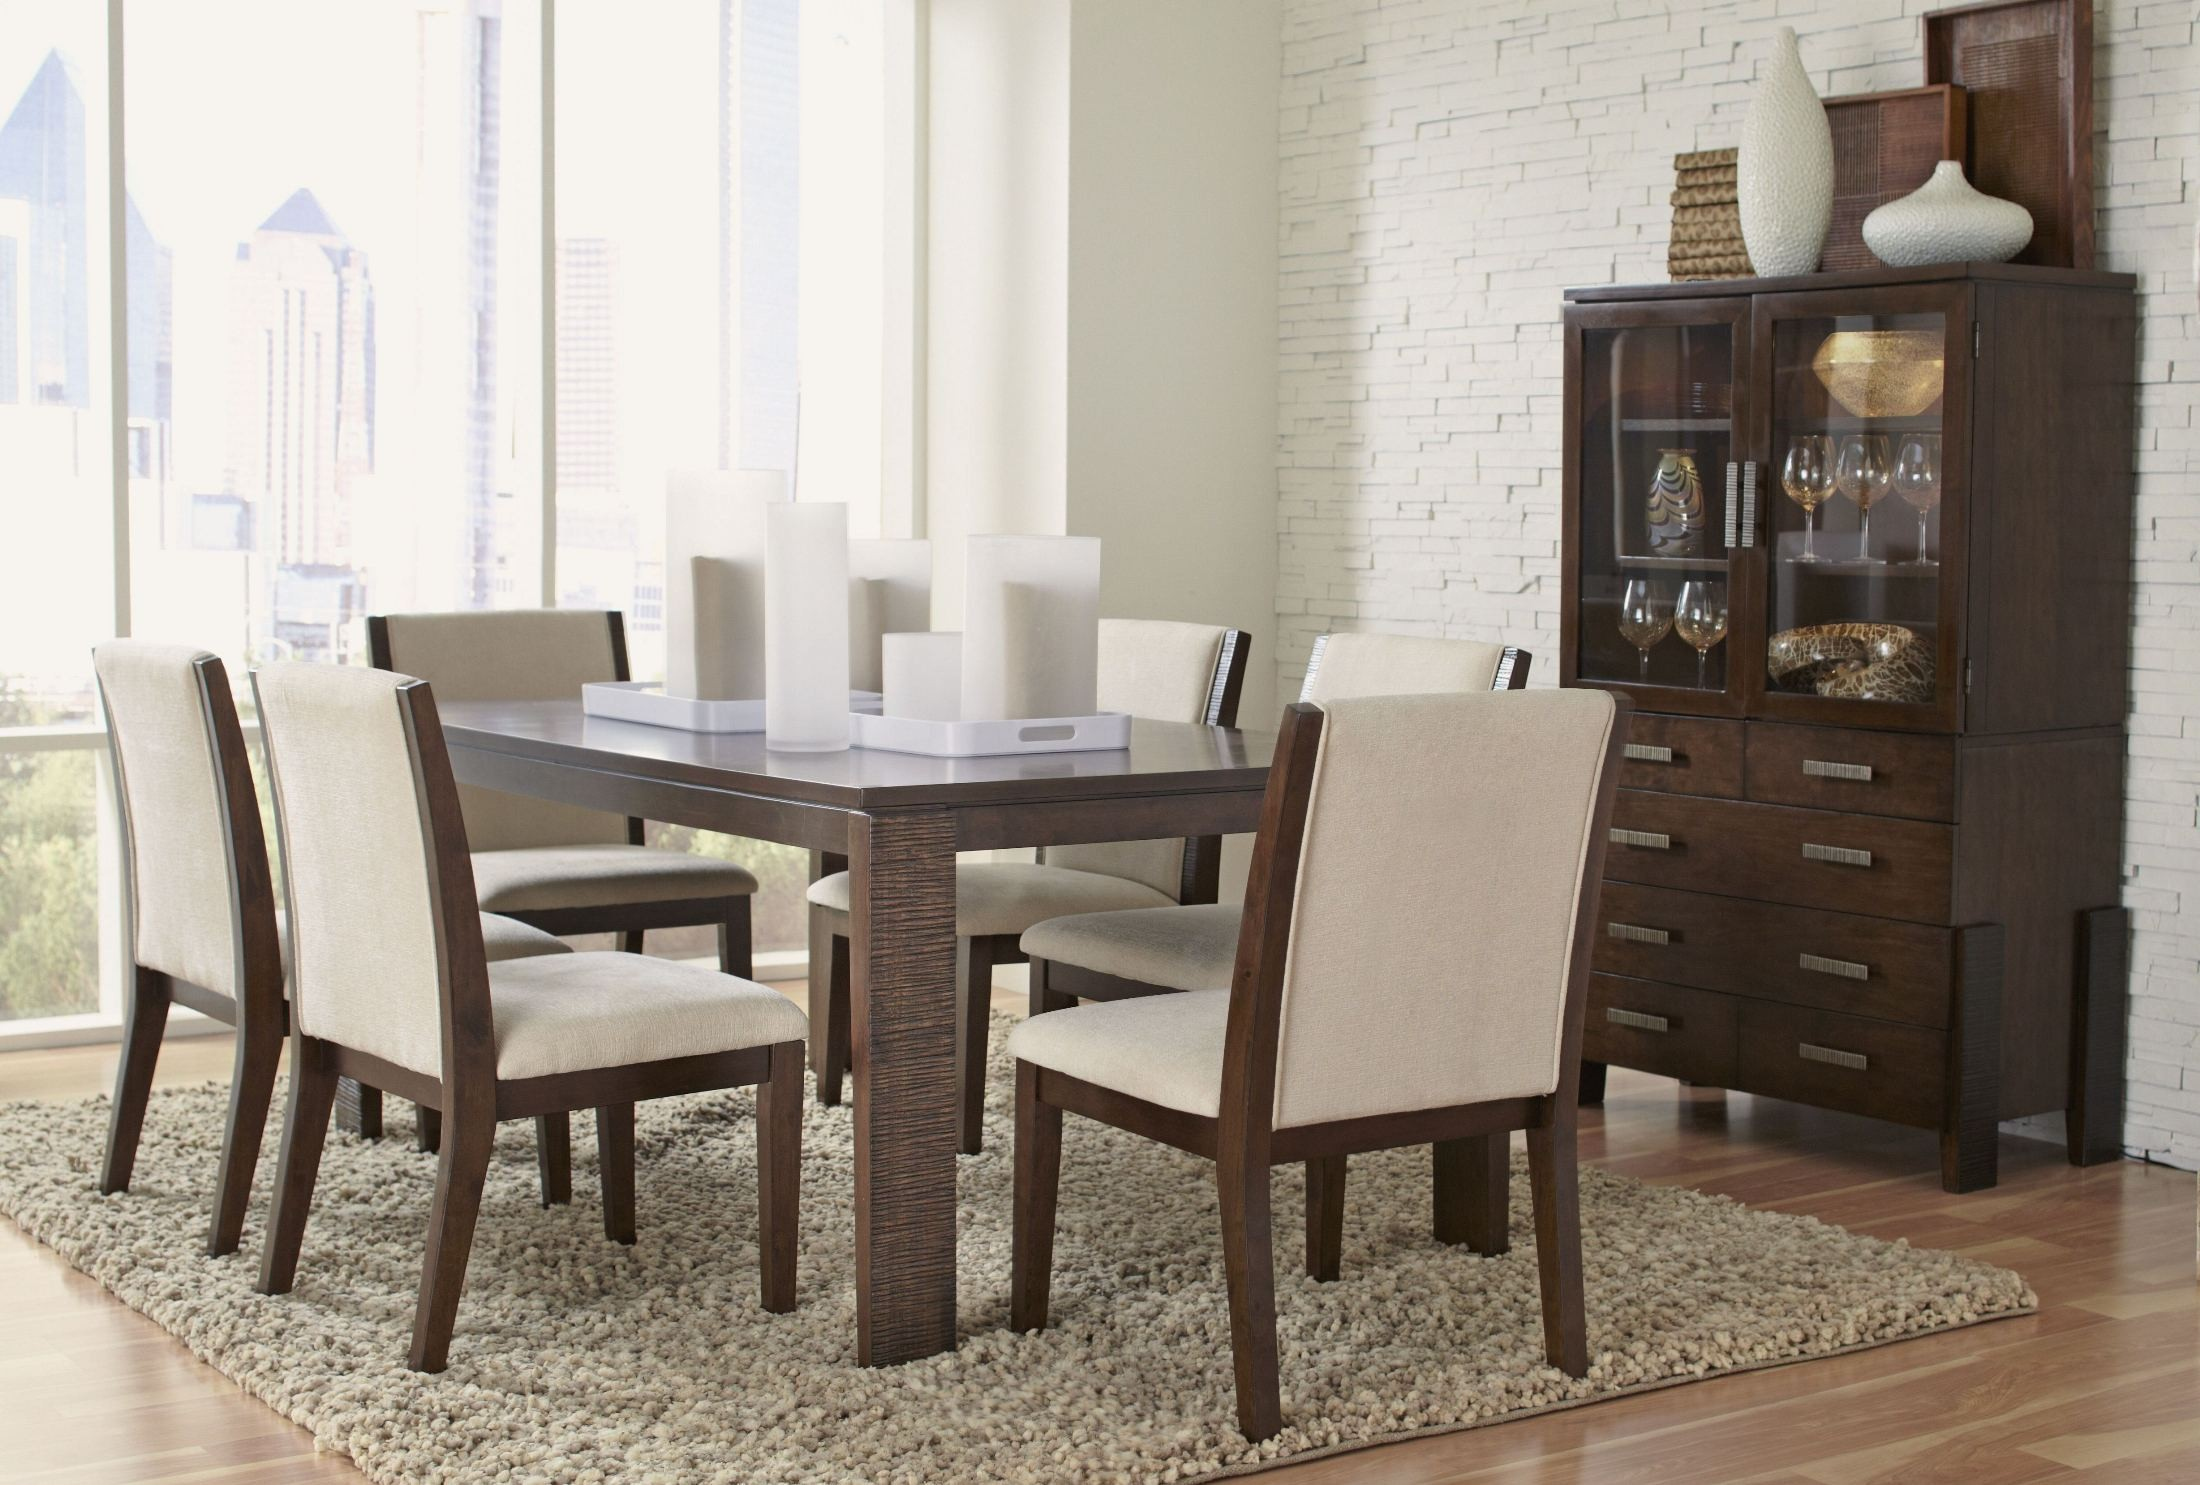 Montego Brown Cherry Rectangular Dining Room Set D560 31 Largo Furniture